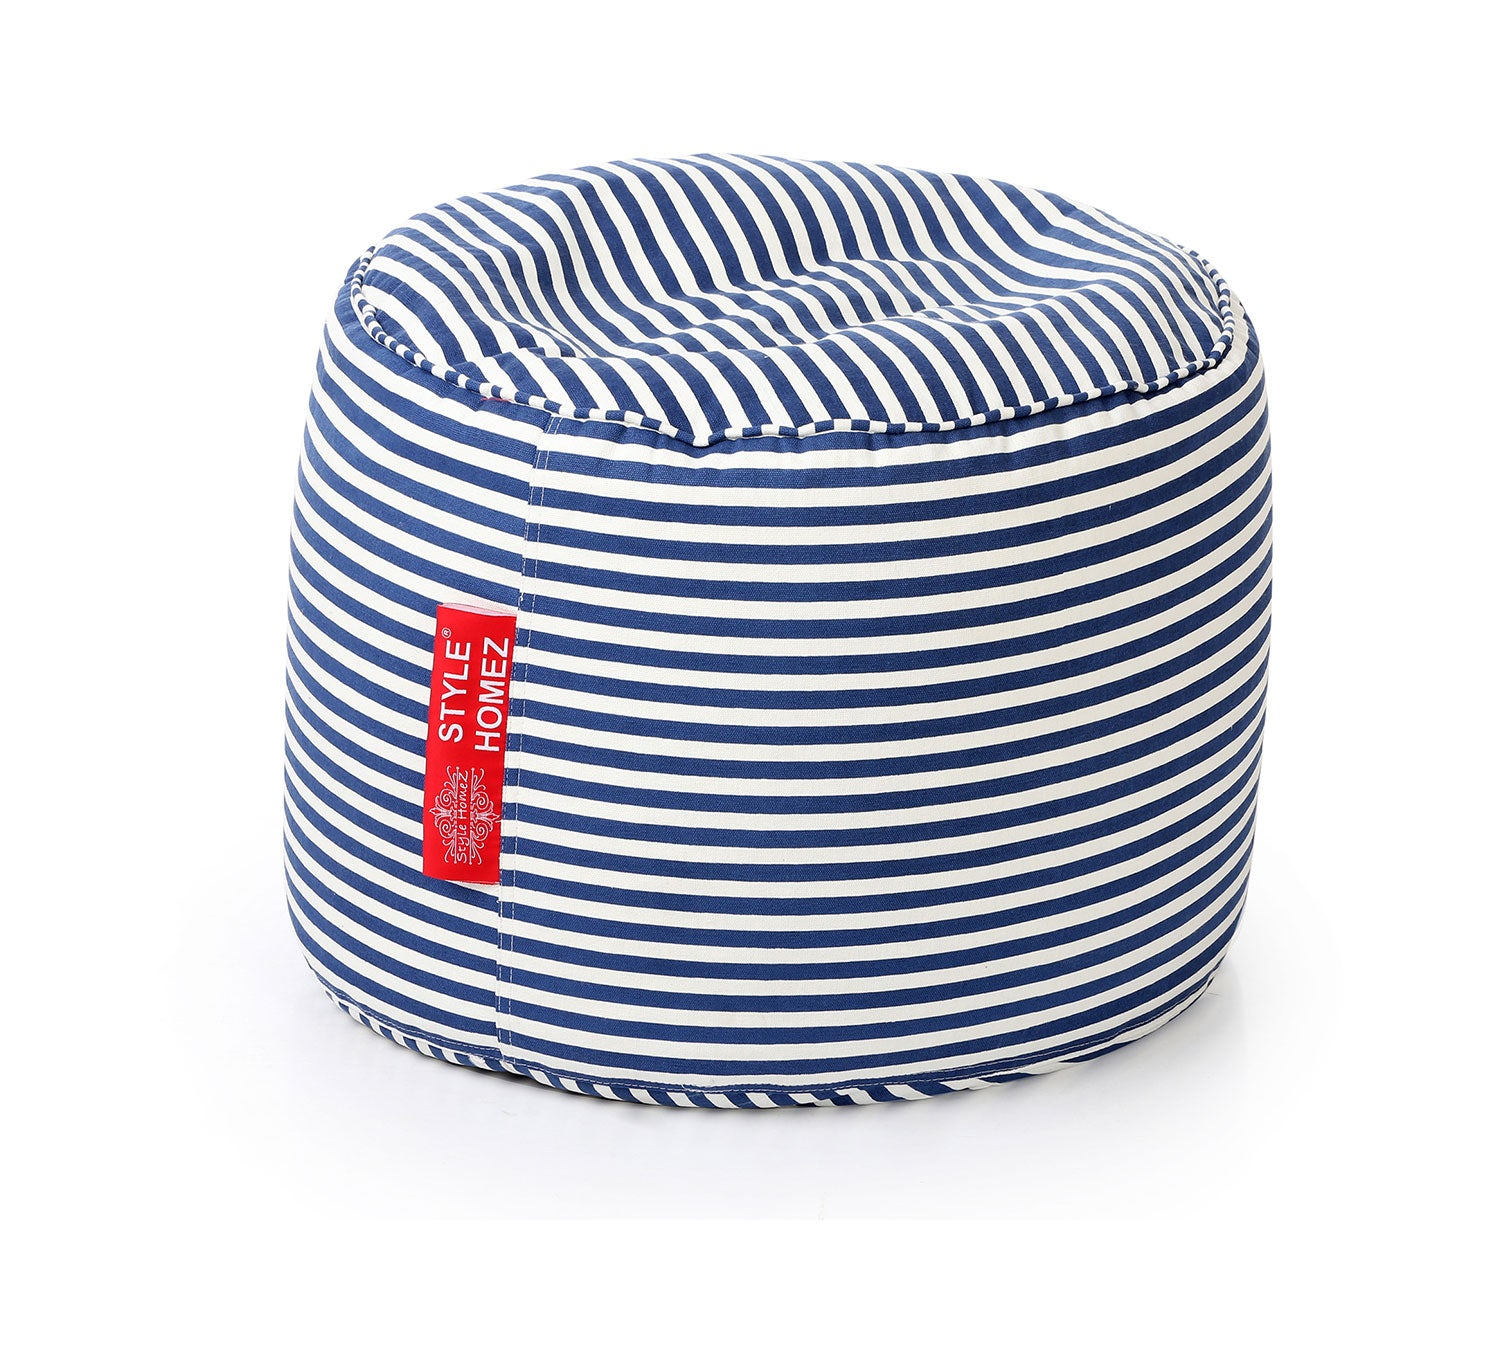 Swell Black And White Large Ottoman Round Stripes With Fillers Pdpeps Interior Chair Design Pdpepsorg